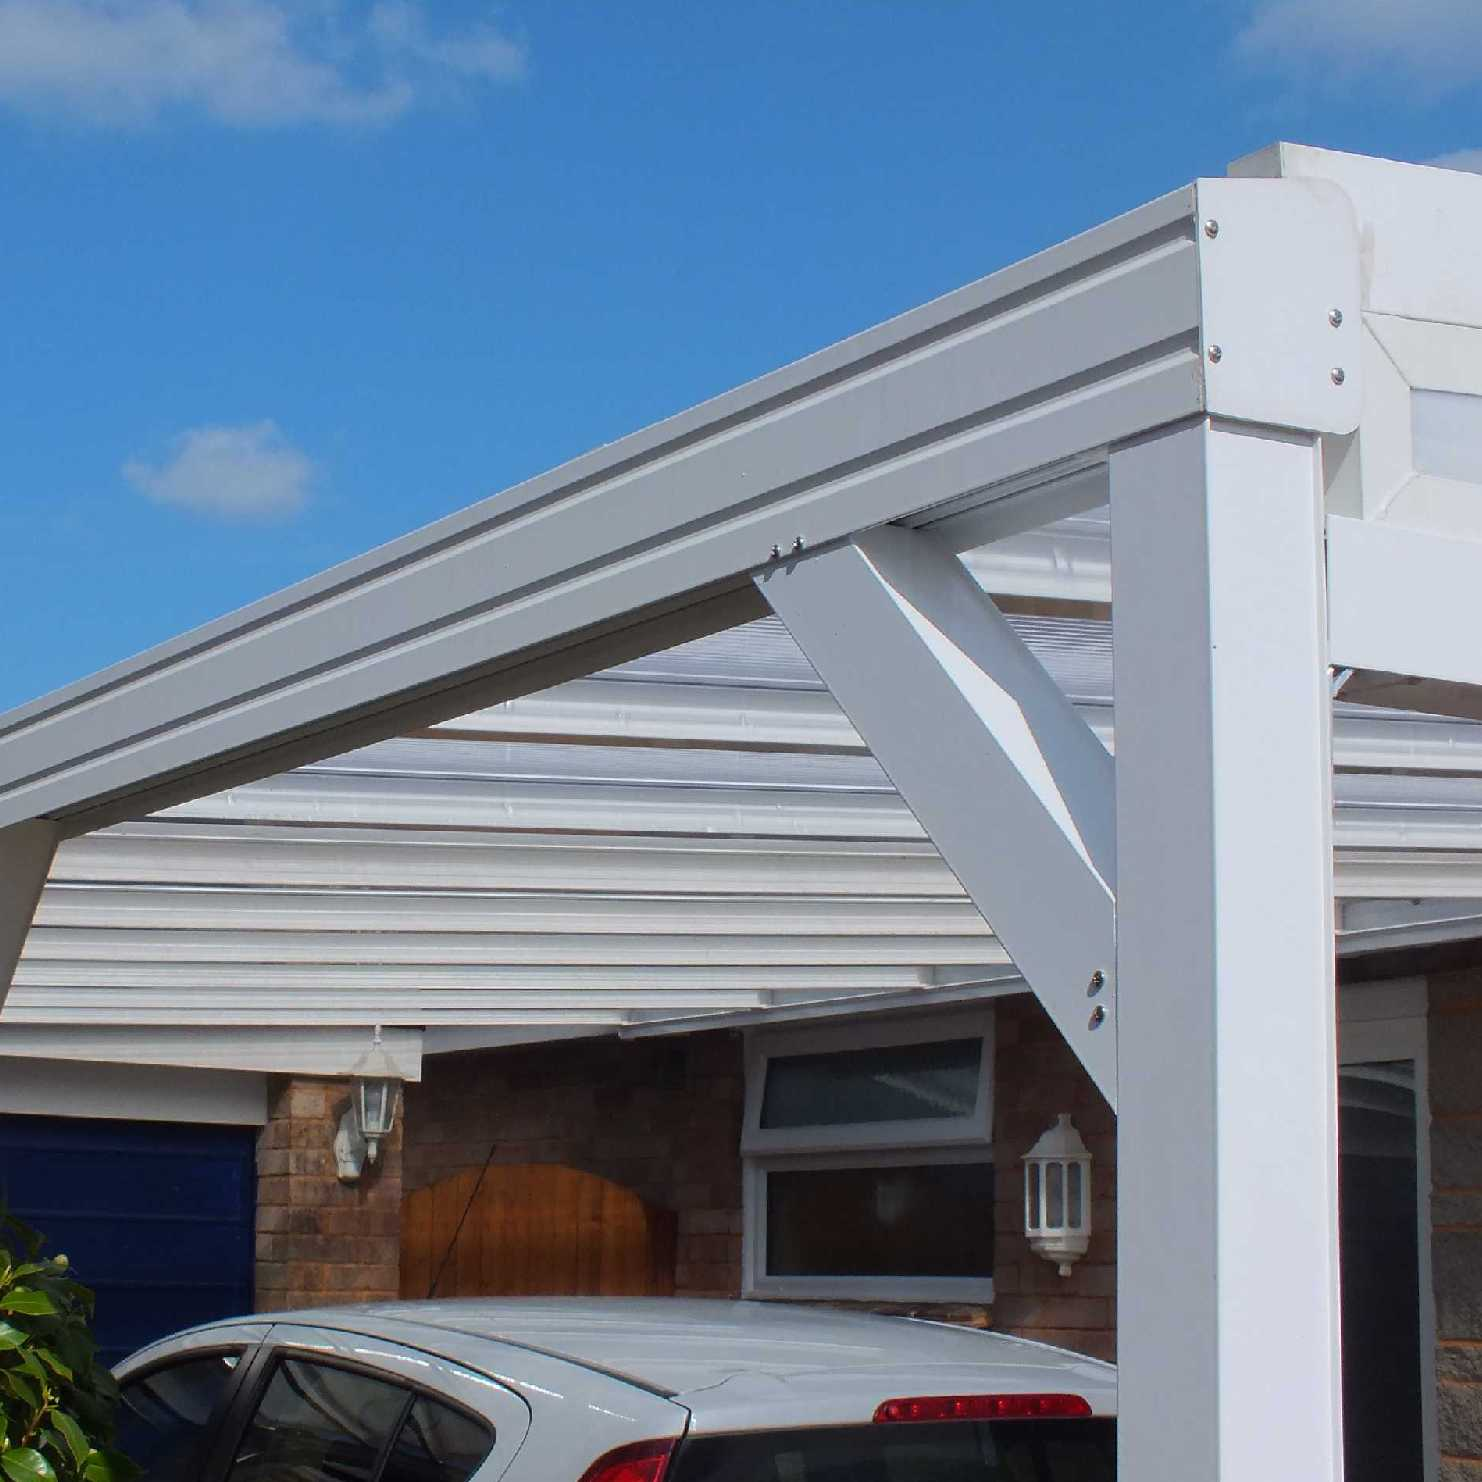 Buy Omega Smart White Lean-To Canopy with 16mm Polycarbonate Glazing - 9.1m (W) x 4.5m (P), (5) Supporting Posts online today